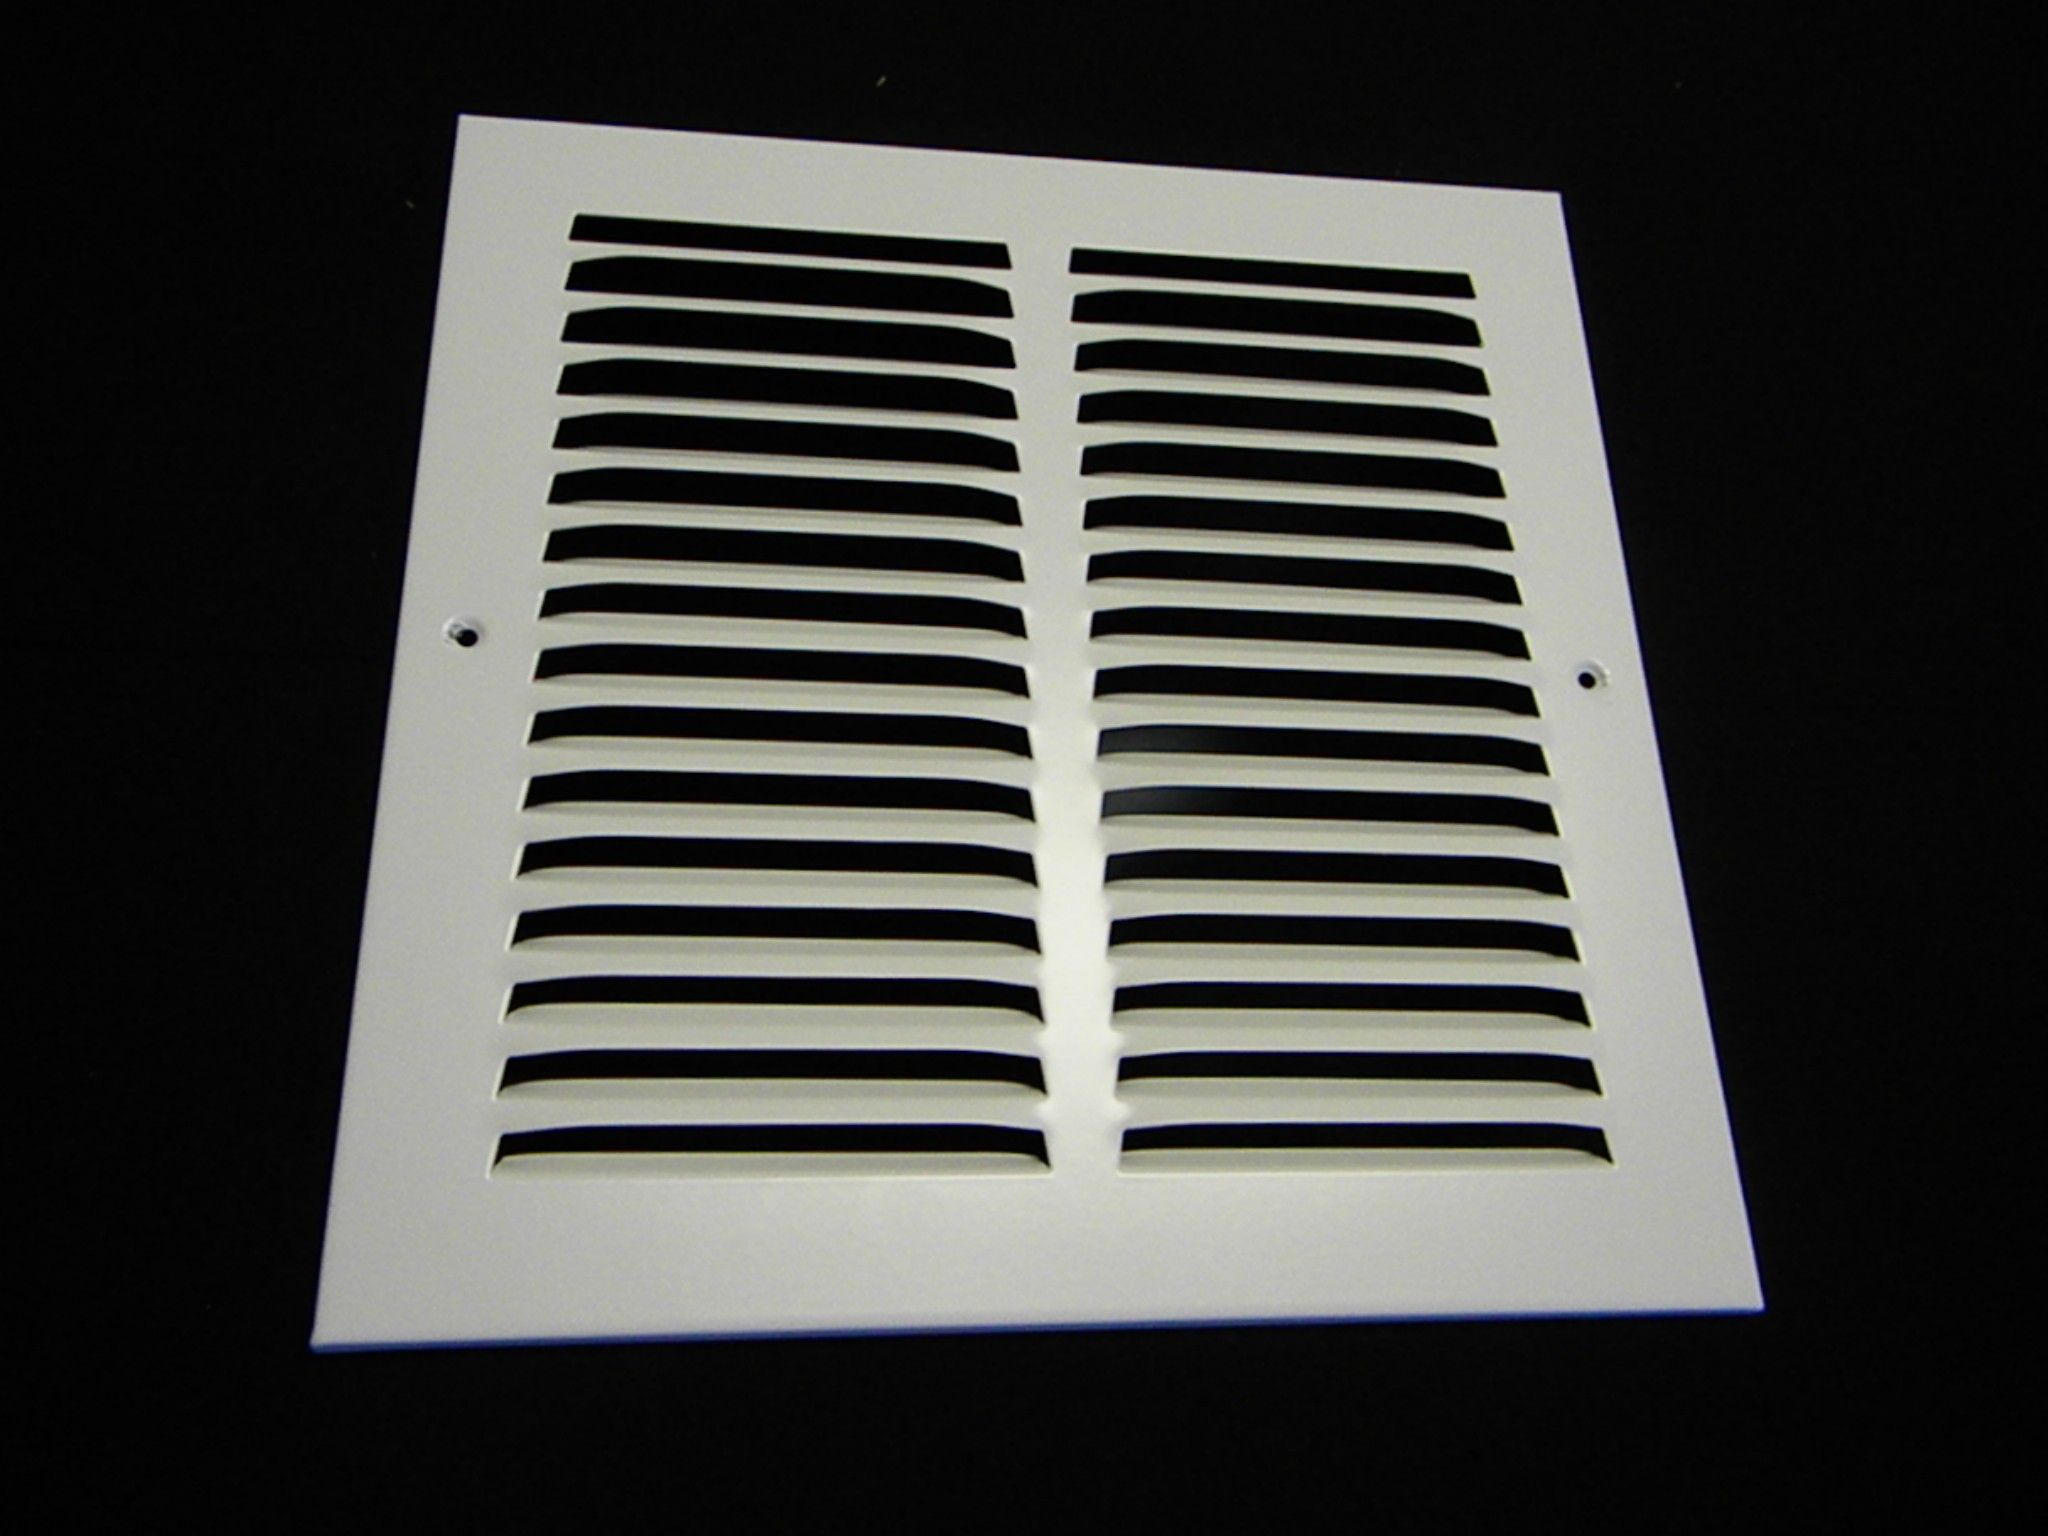 10x8 Return Stamped Grille